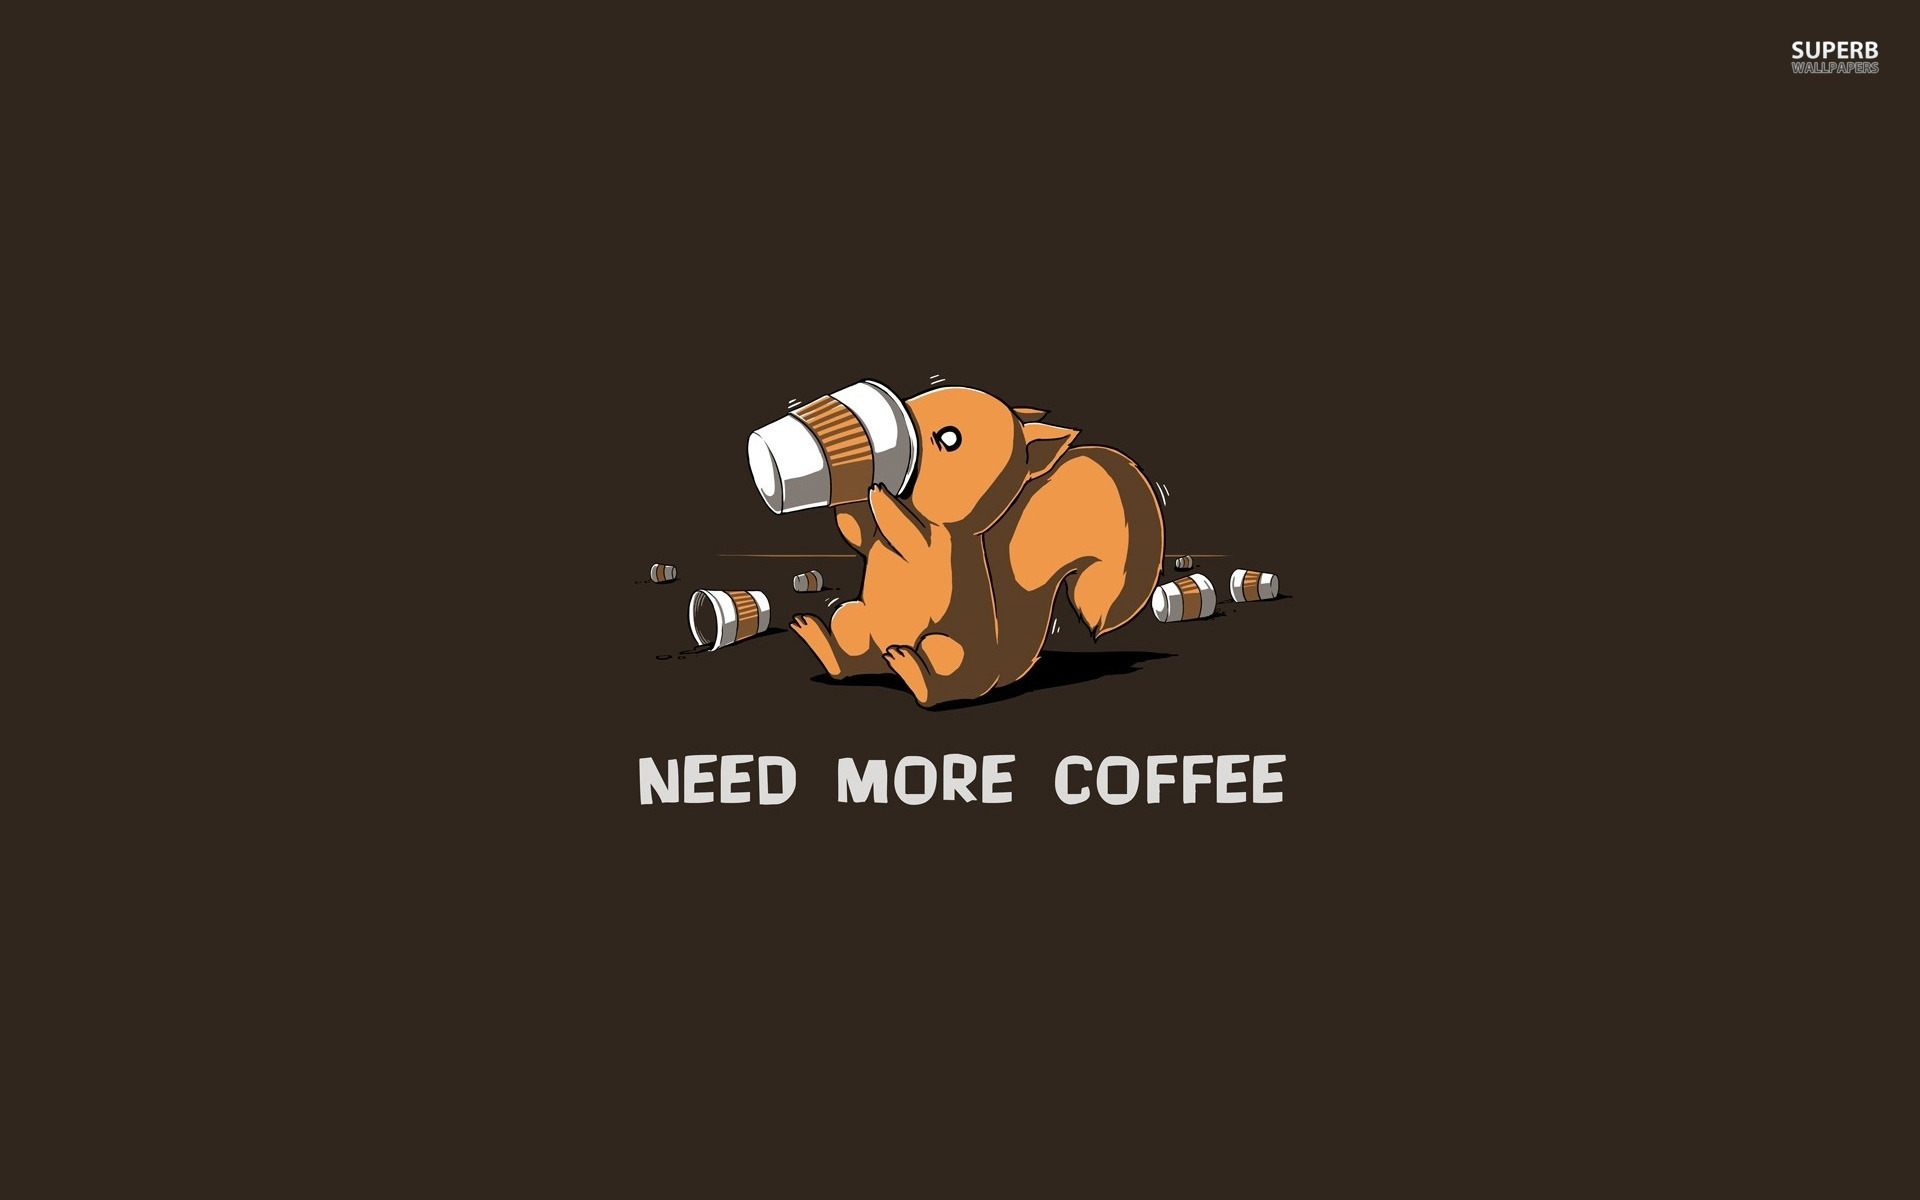 Need more coffee wallpaper 1920x1200